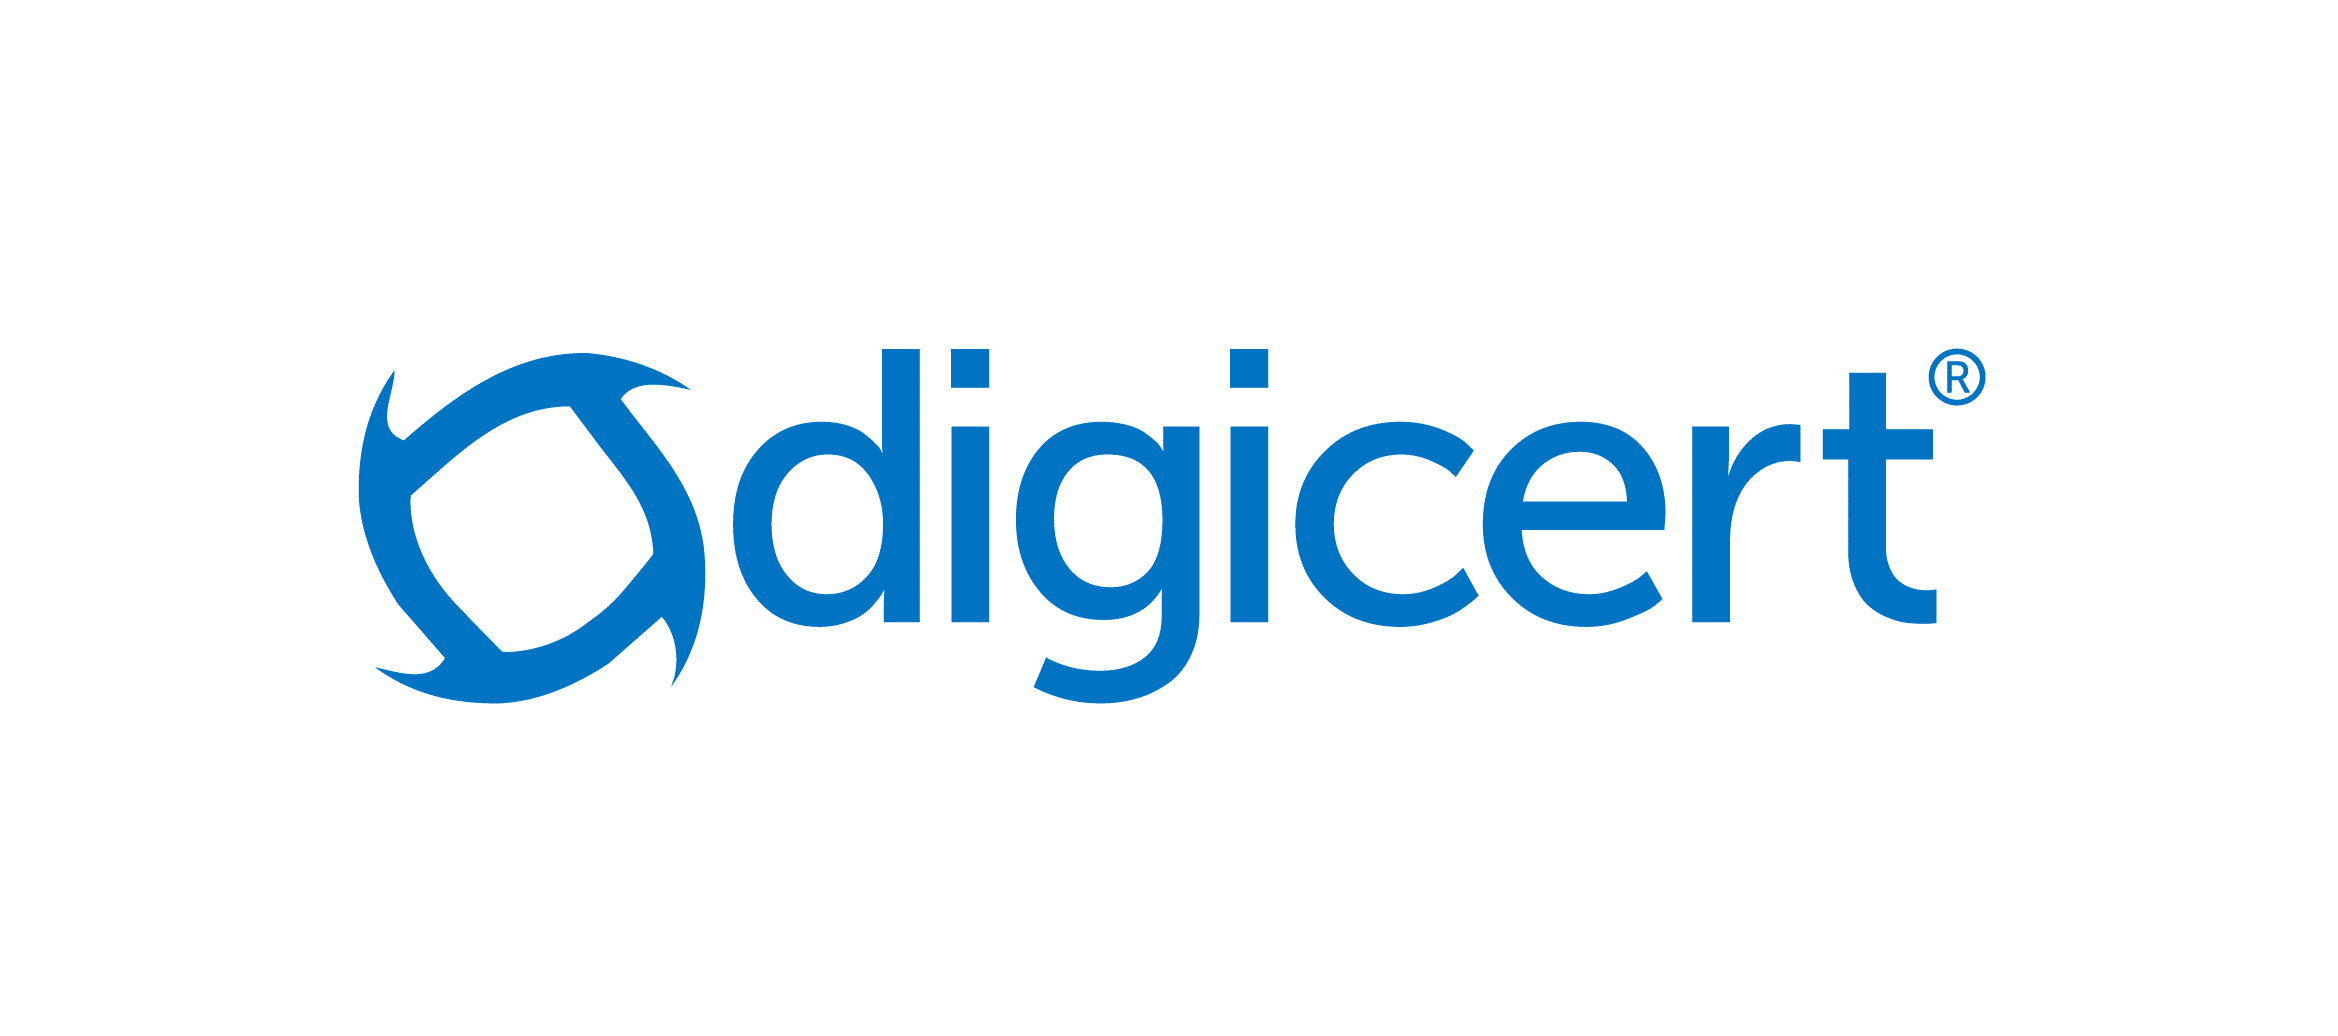 DigiCert-blue-transparent-logo